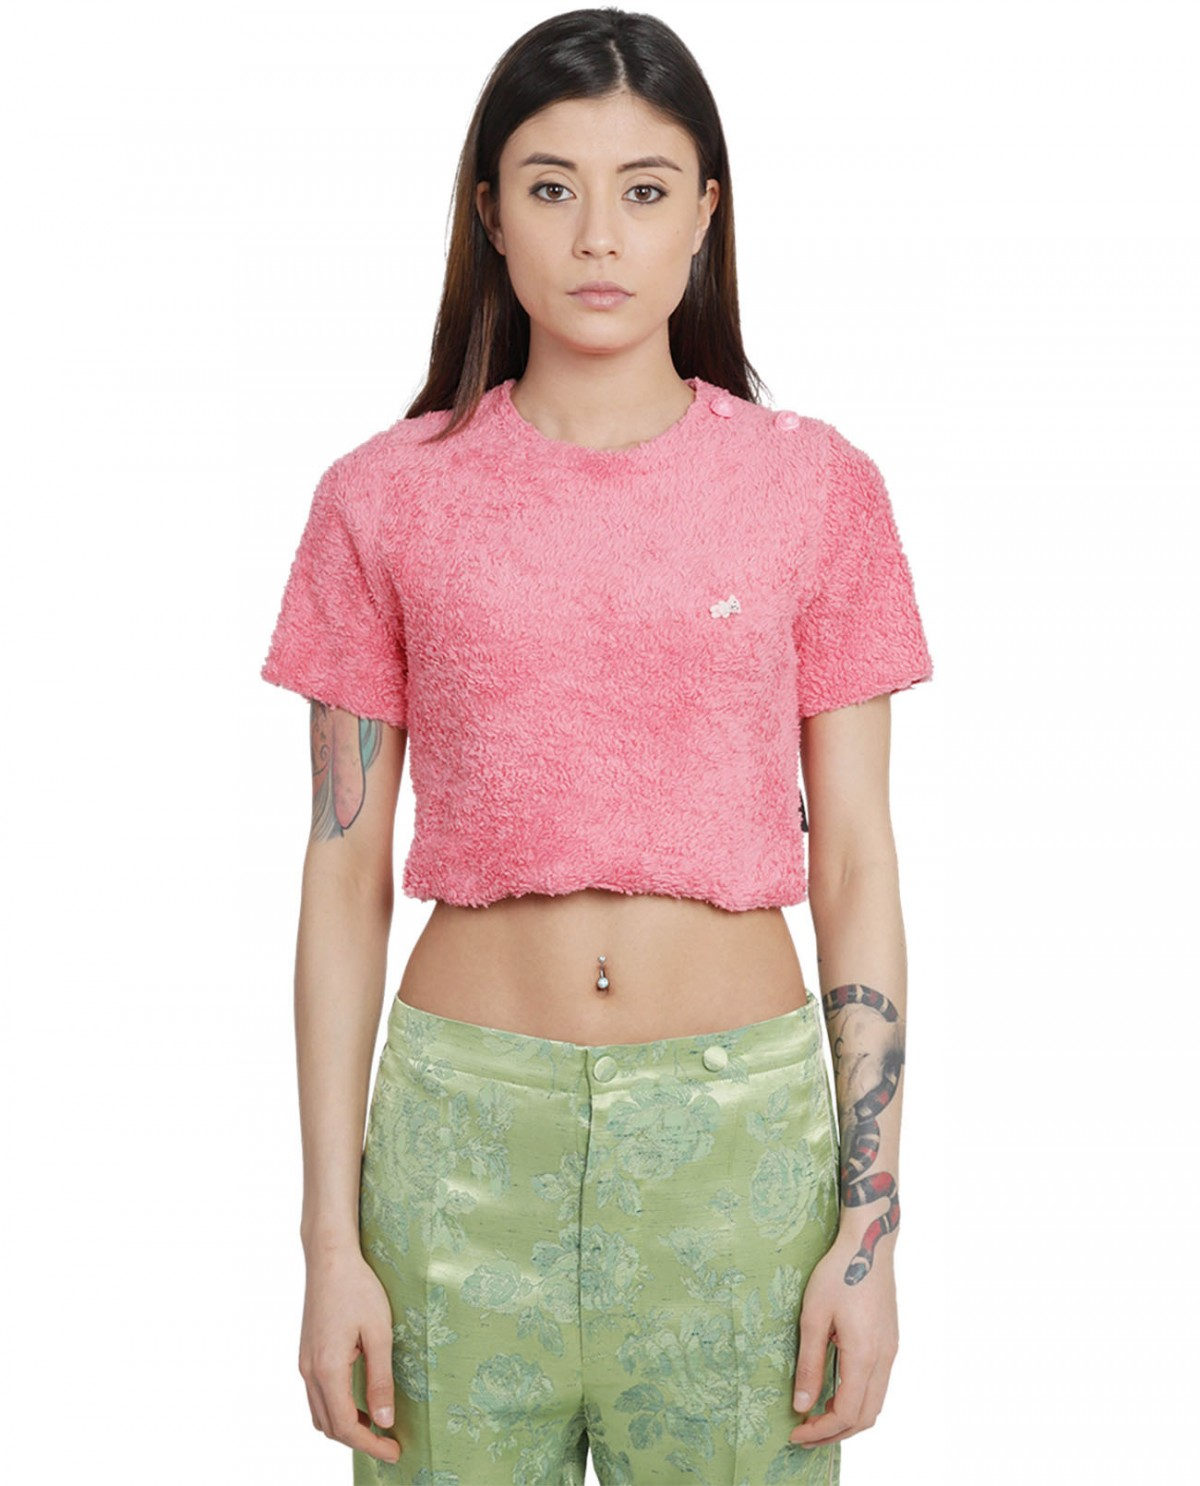 Cool T.M pink cropped top